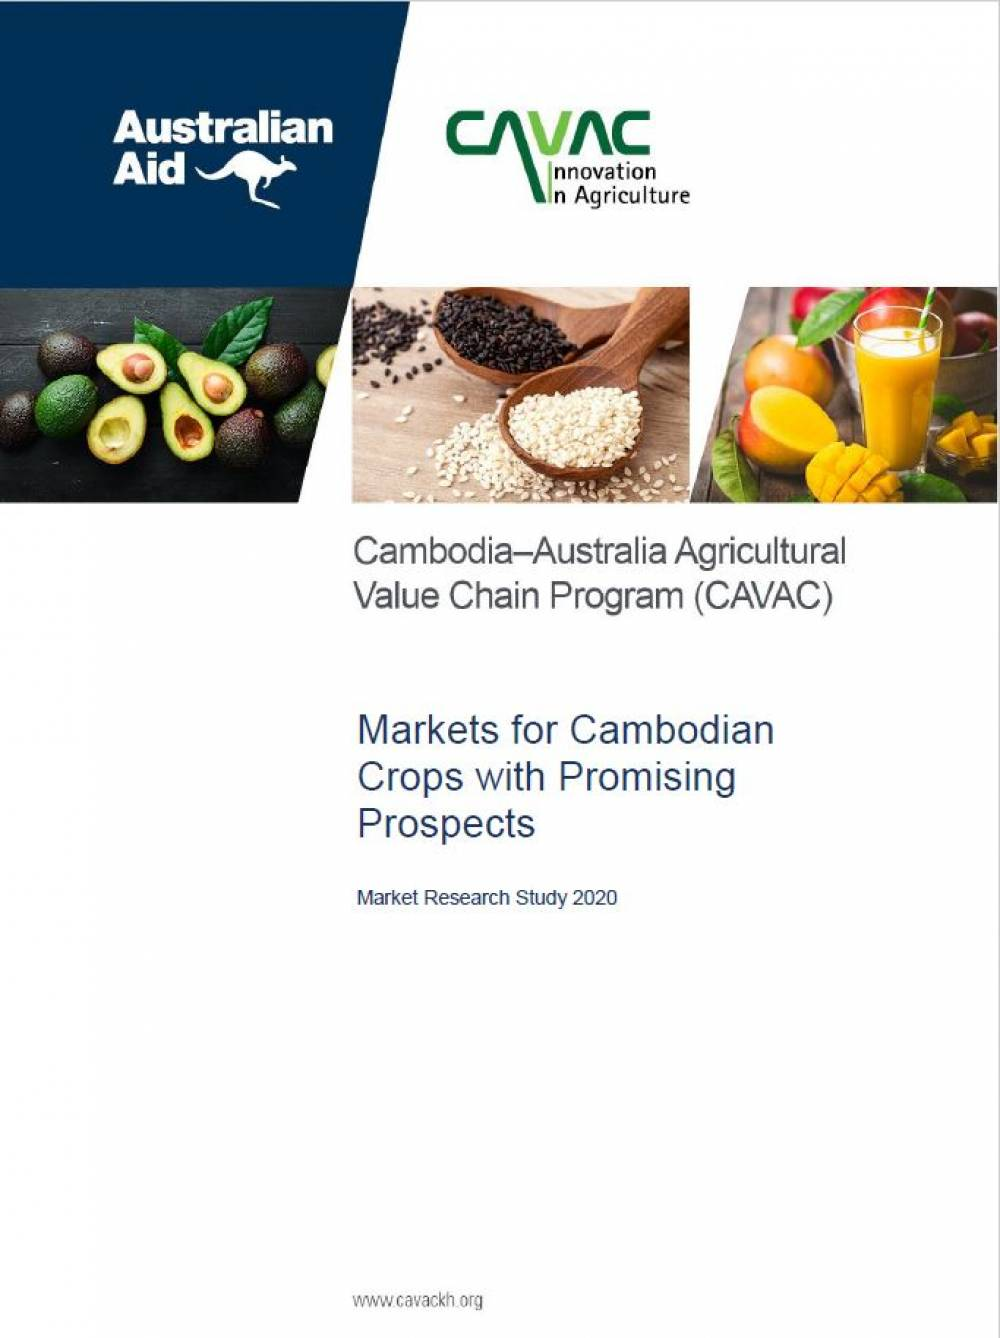 Markets for Cambodian Crops with Promising Prospects